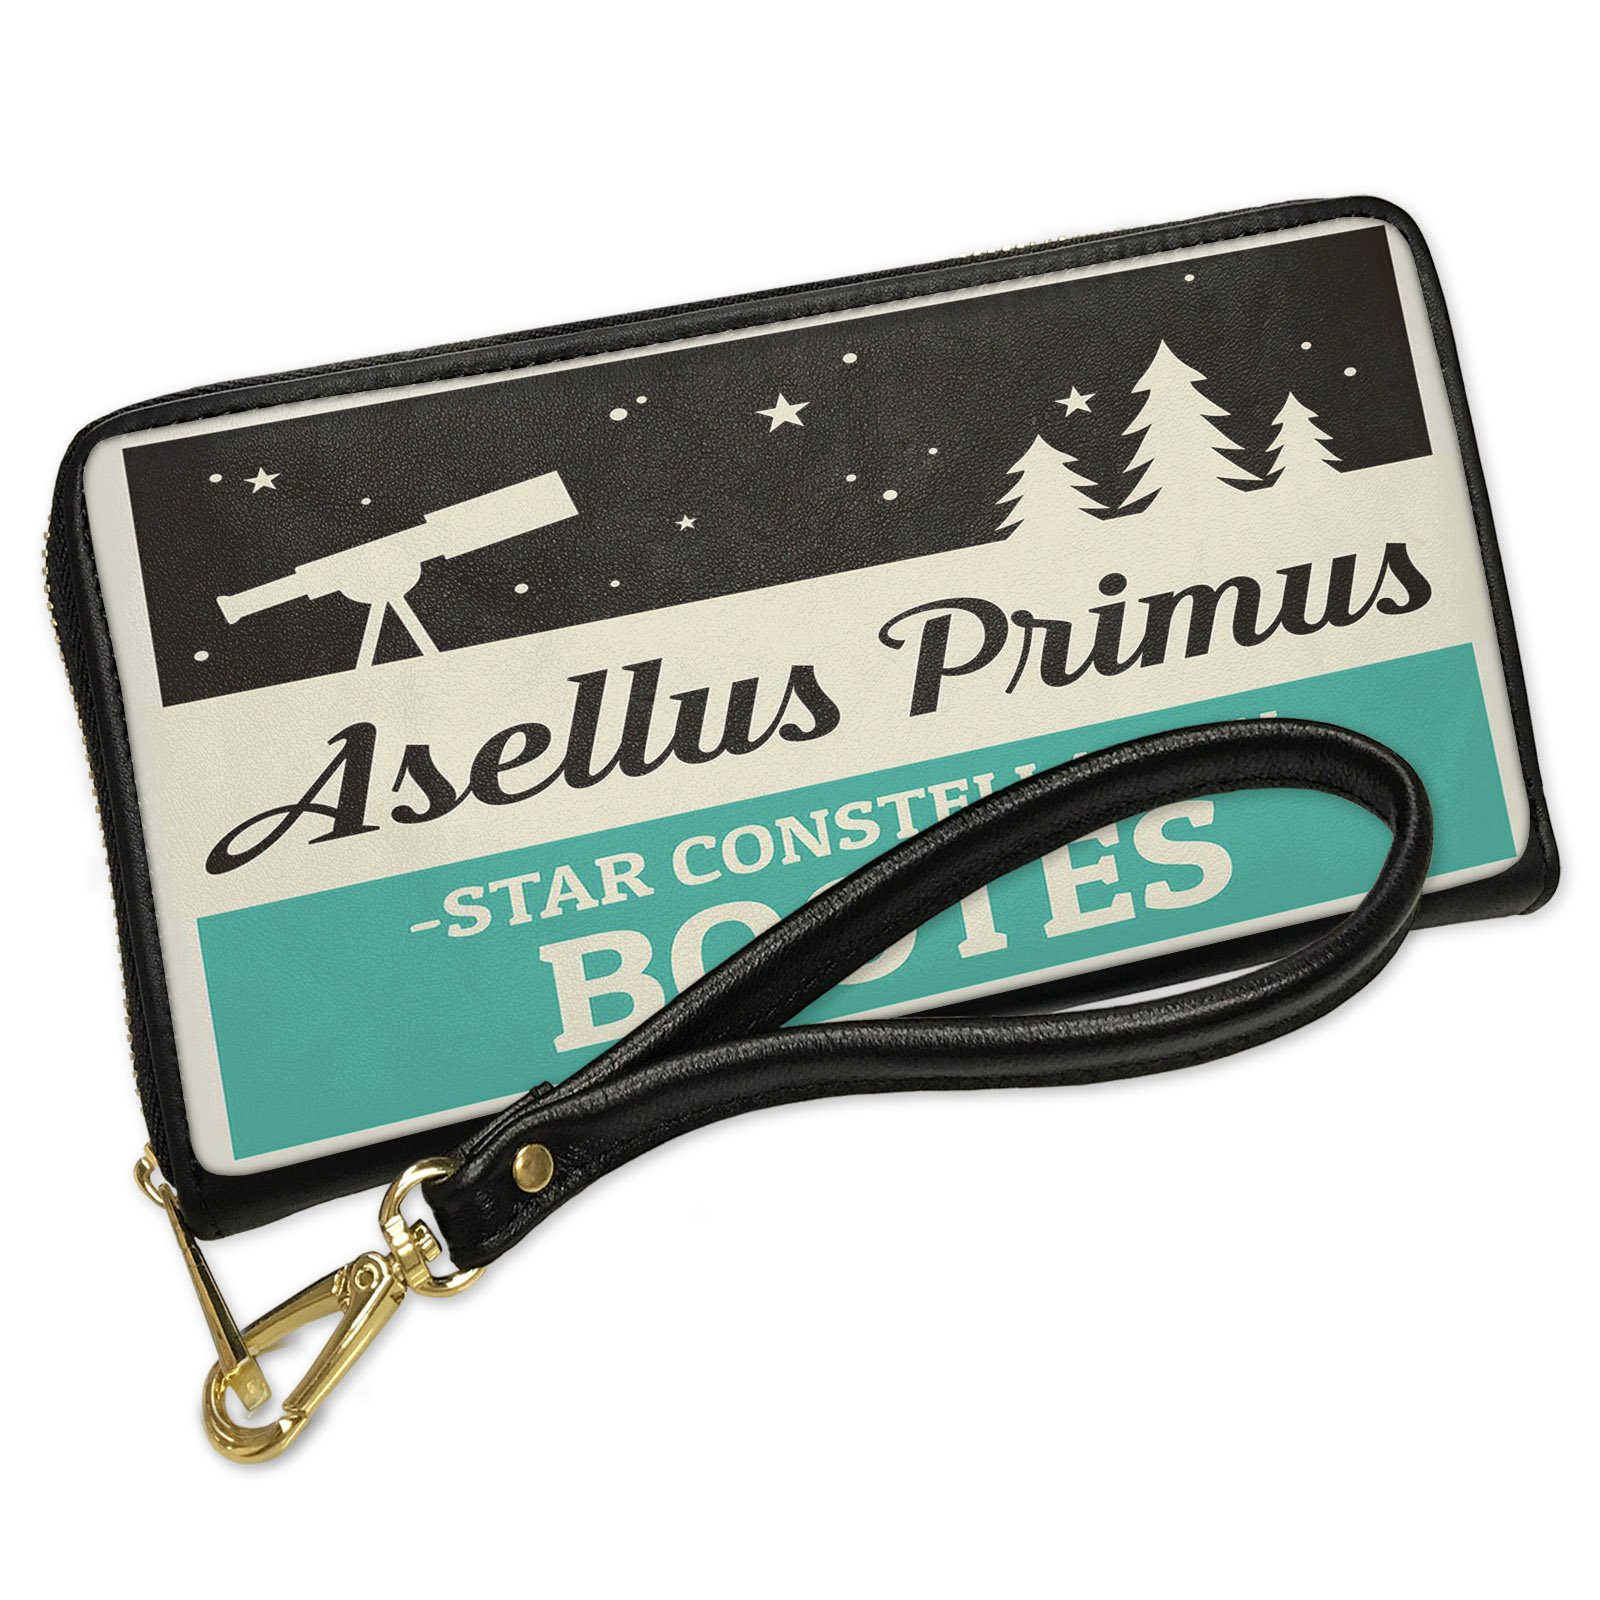 Wallet Clutch Star Constellation Name Bootes - Asellus Primus with Removable Wristlet Strap Neonblond